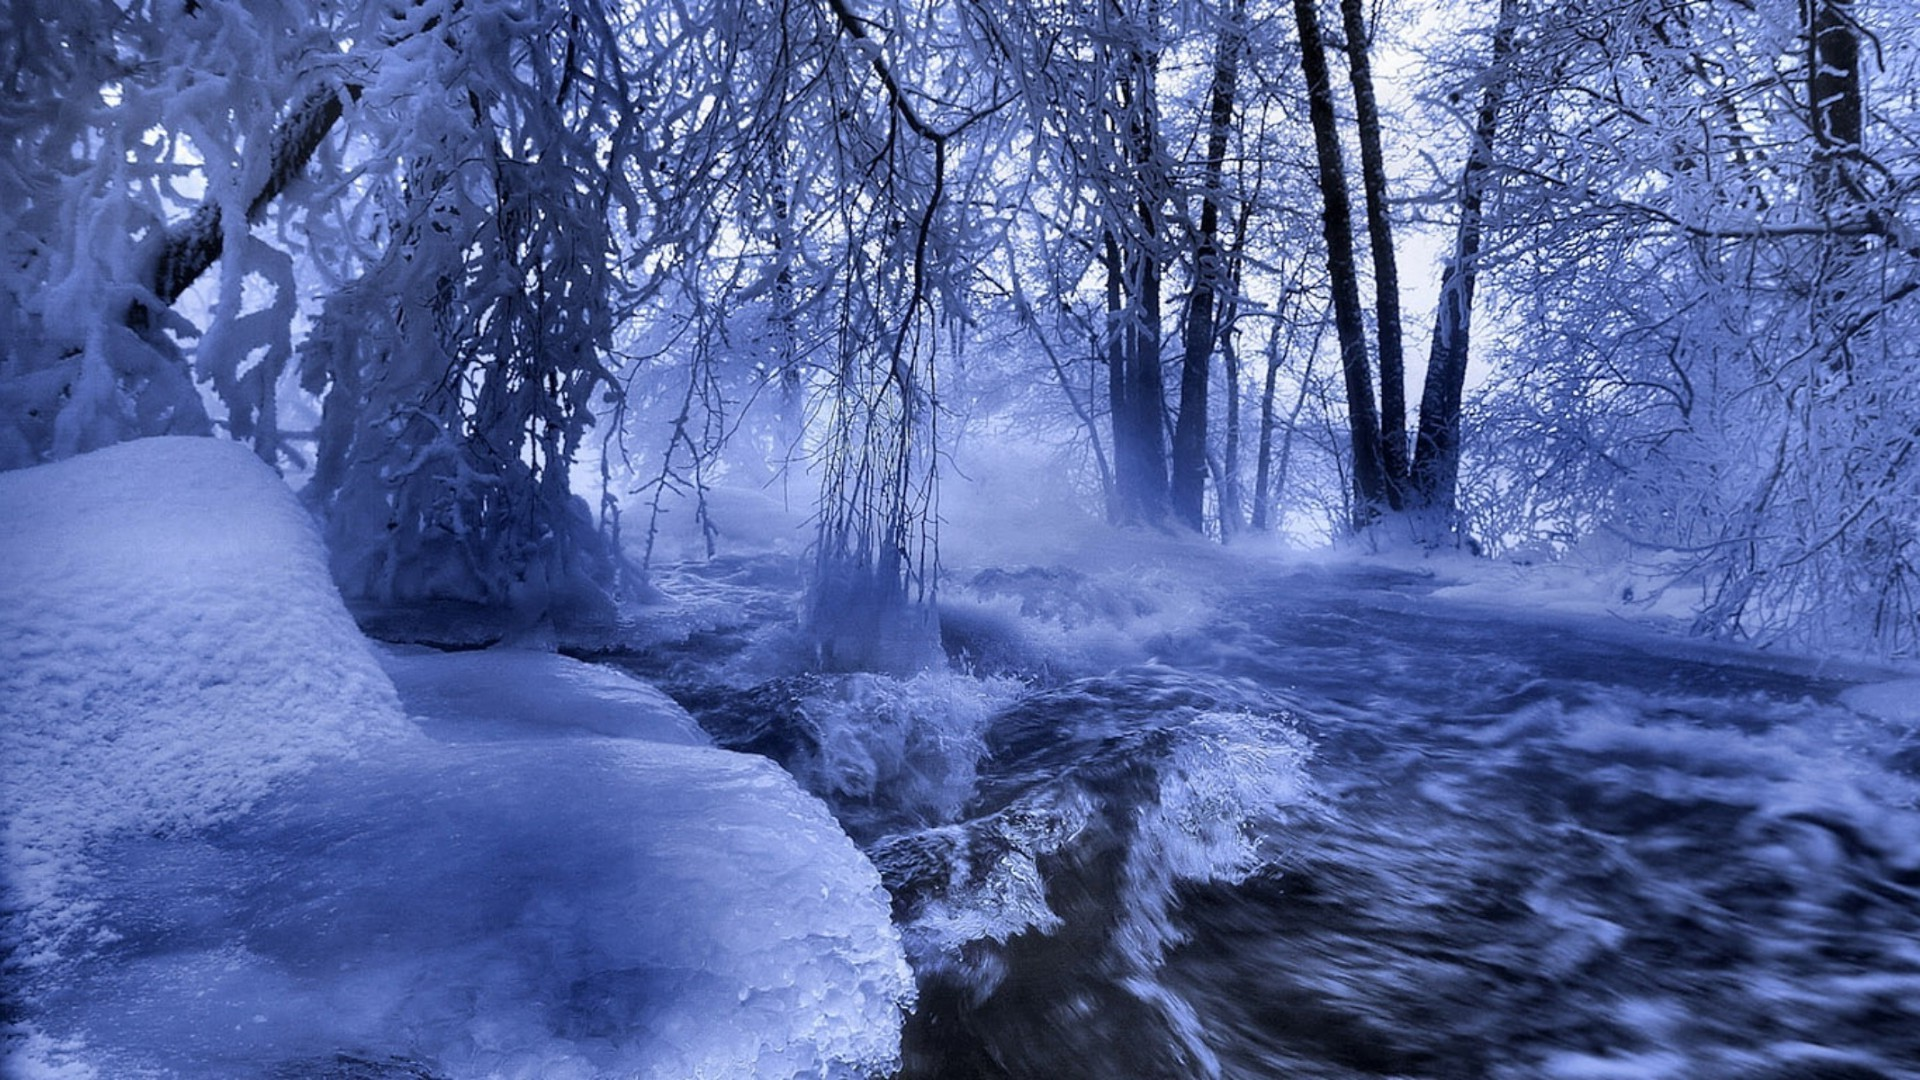 winter snow cold ice landscape frost frozen wood tree nature scenic frosty water season weather outdoors fair weather river park